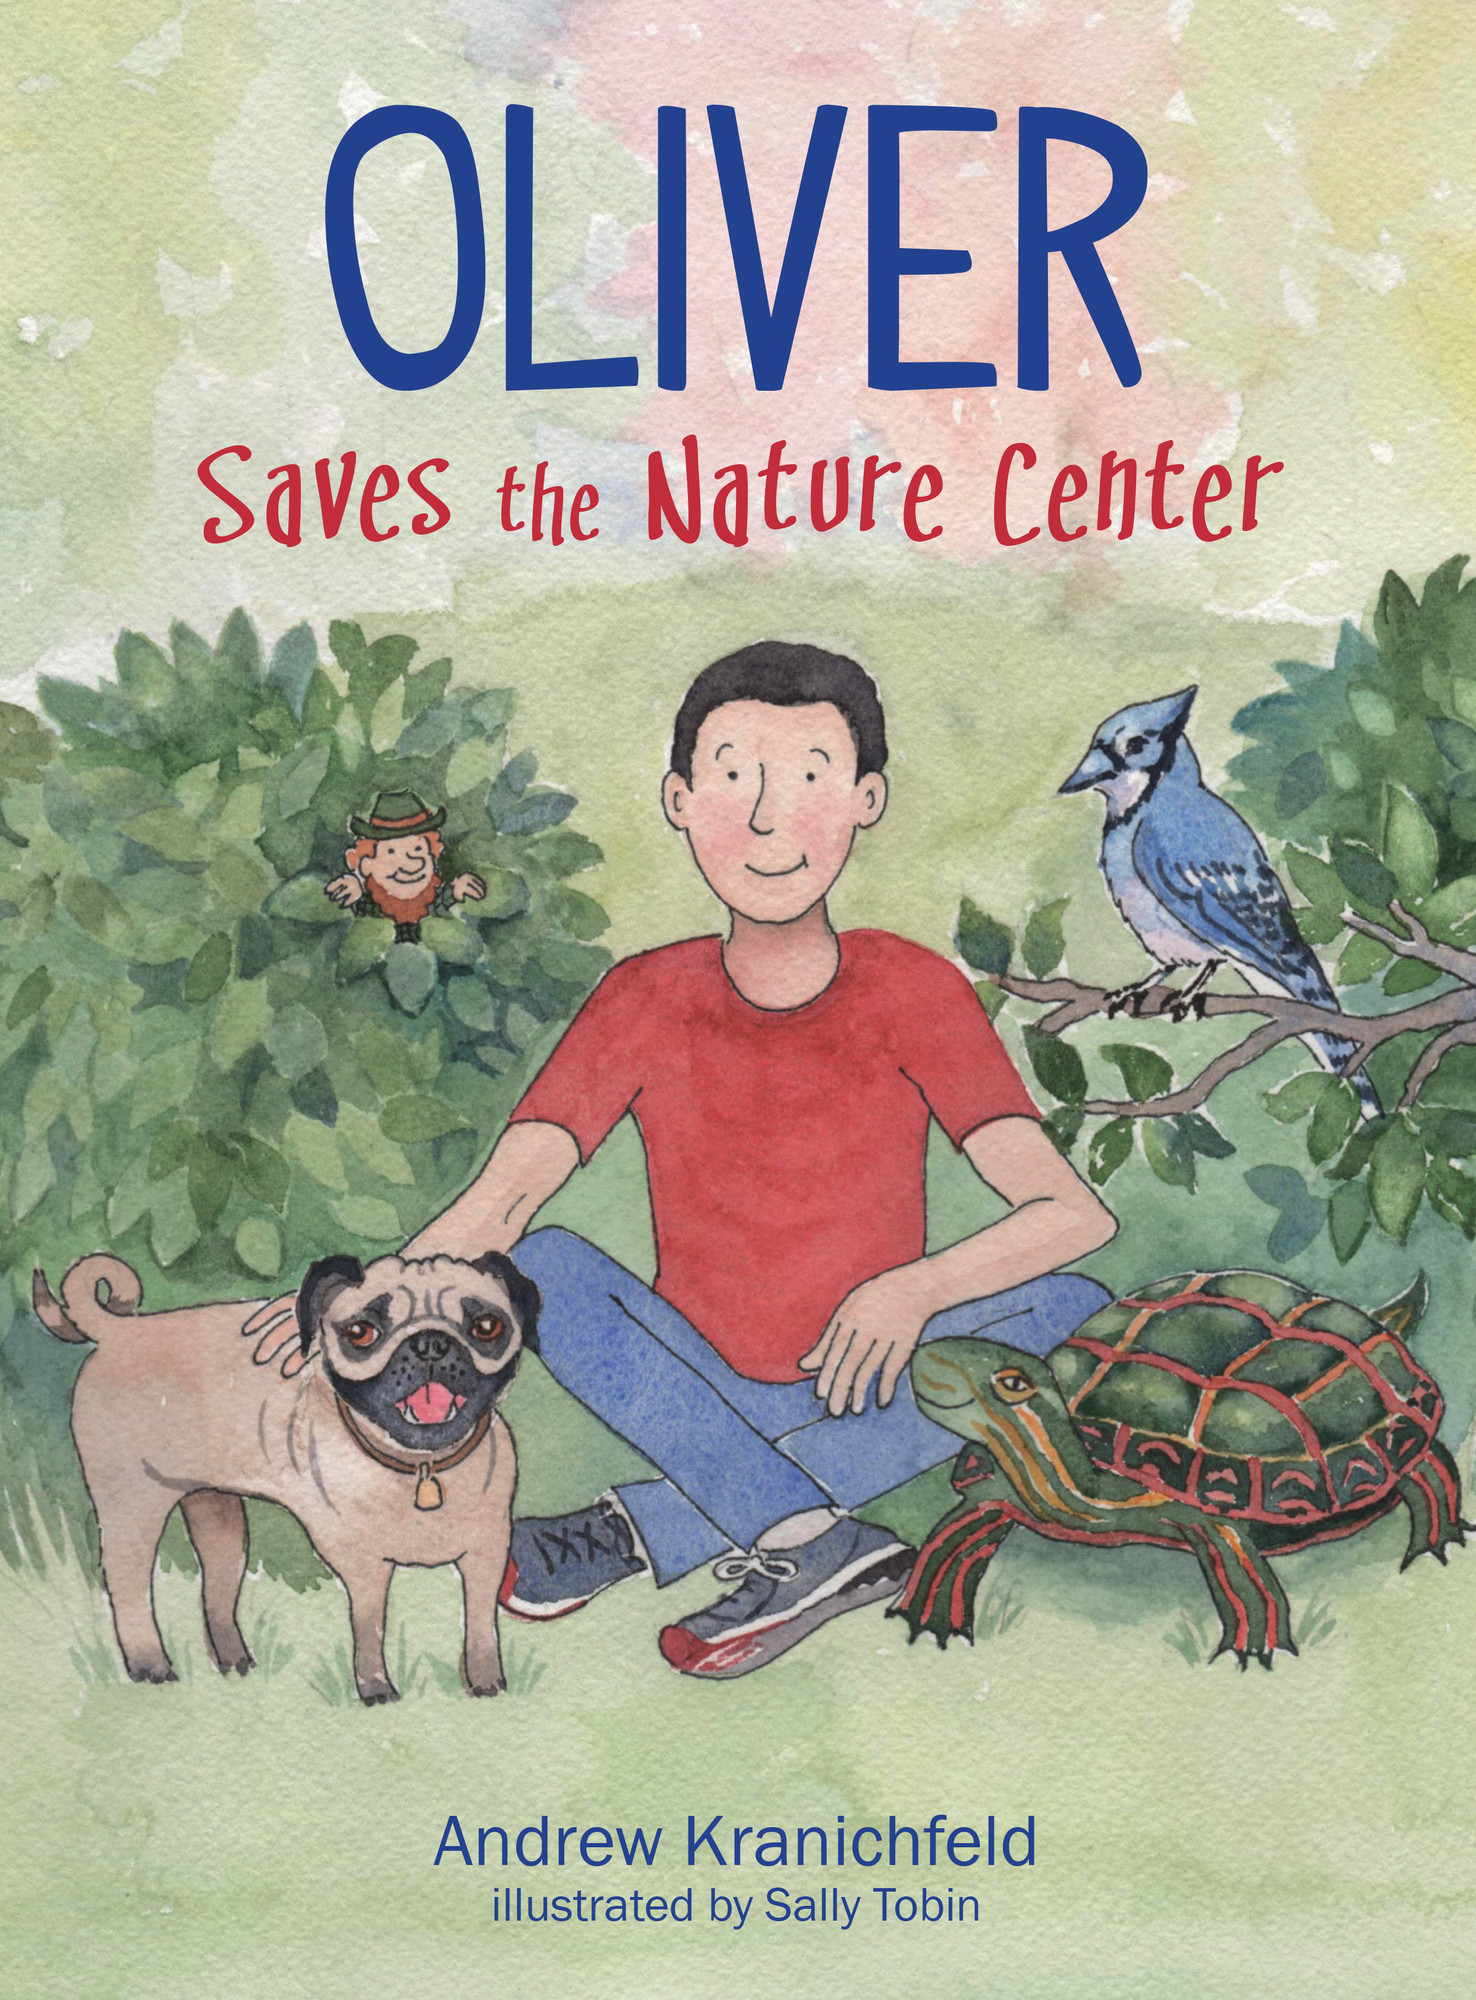 'Oliver Saves the Nature Center,' a book by local Kingsbridge author Andrew Kranichfeld.